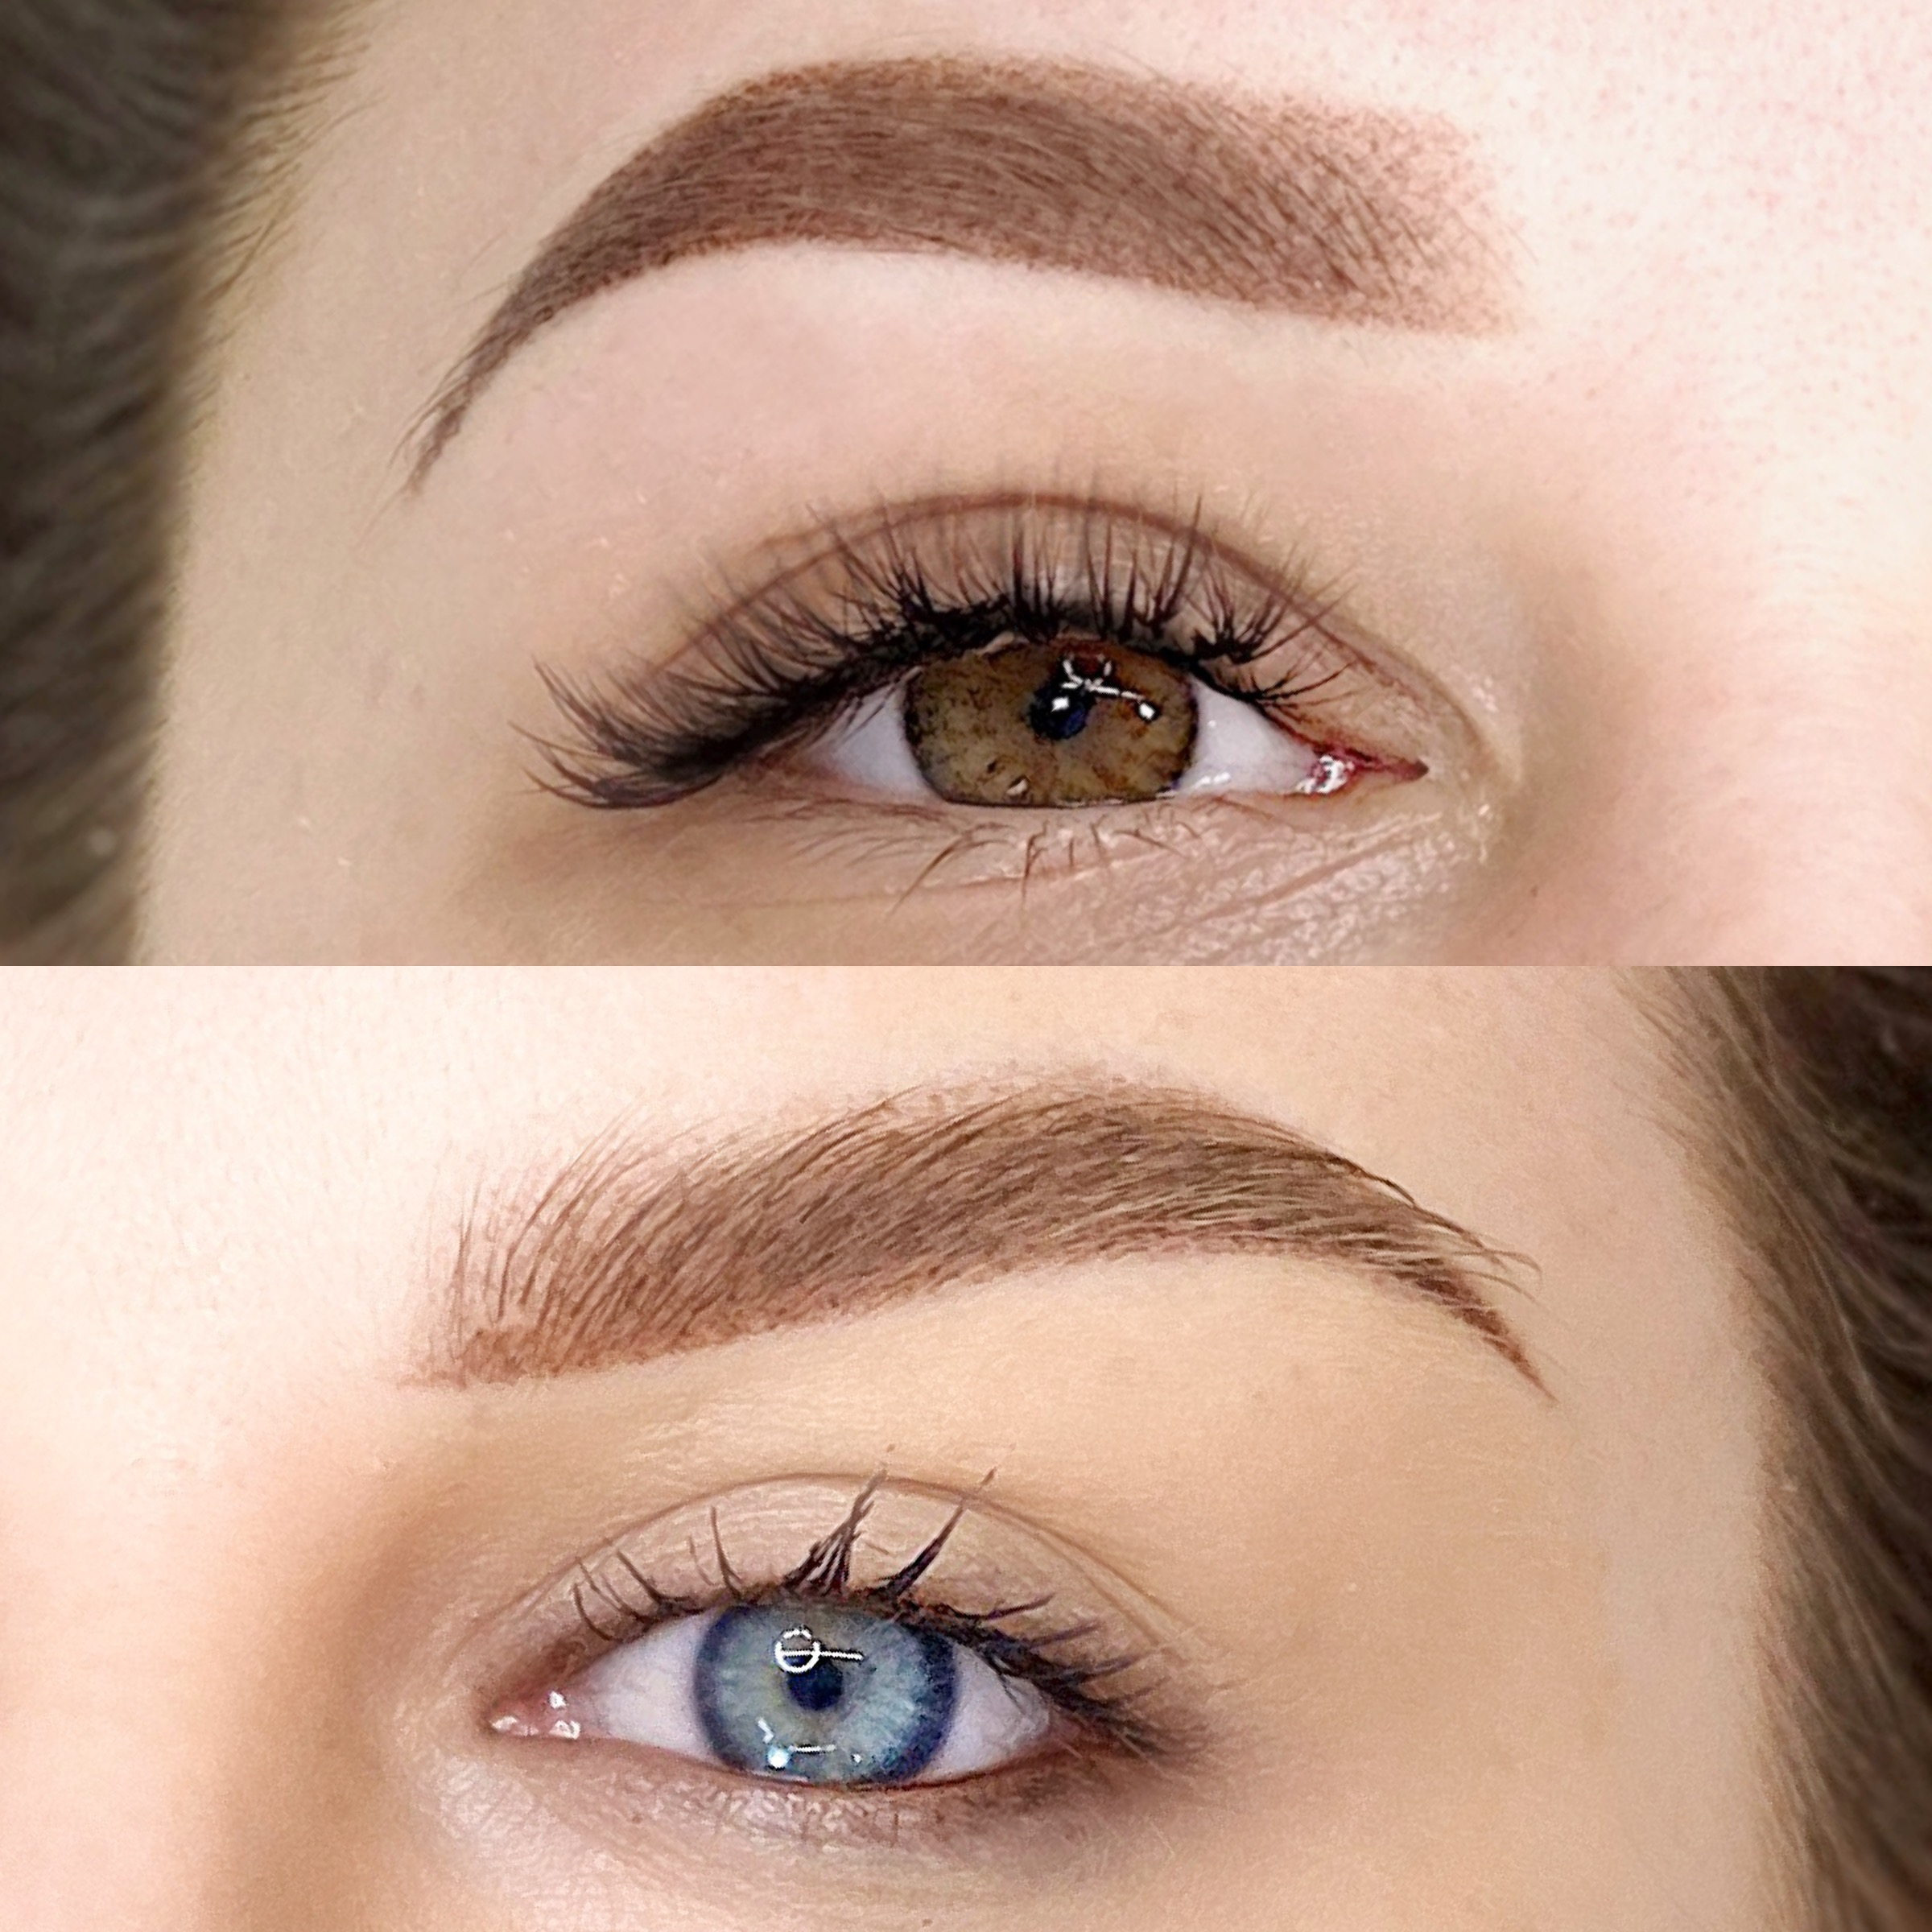 Up your skills with THE PERFECT BROW ™️W Webinar